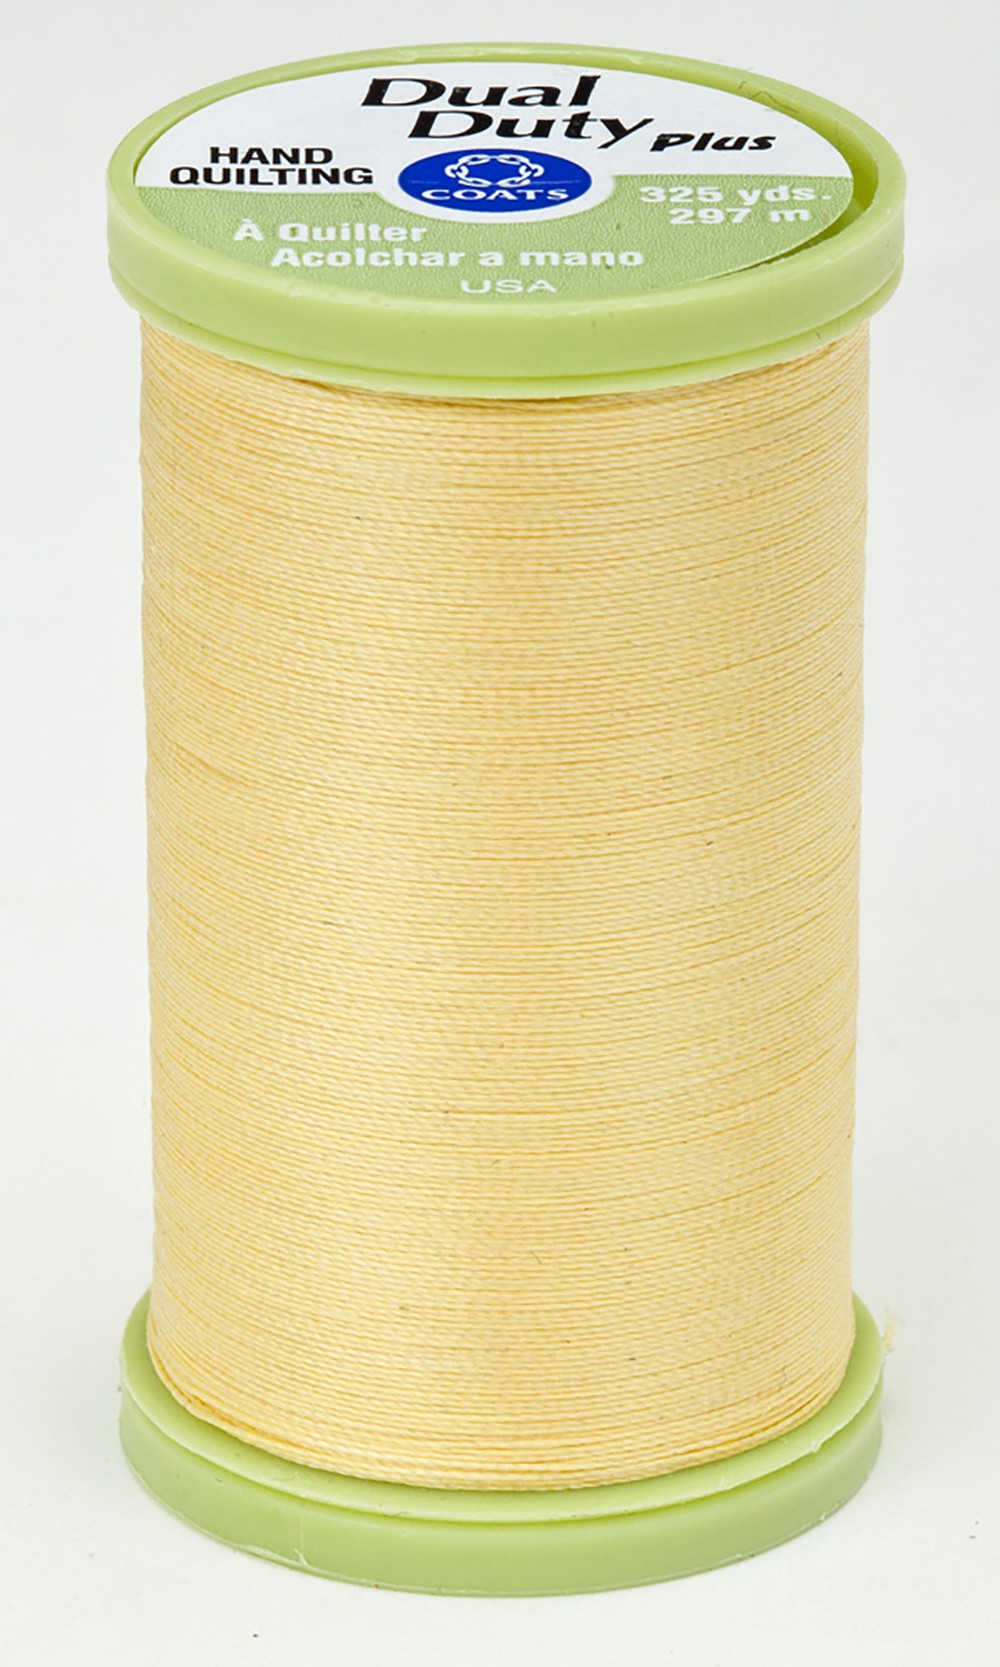 Dual Duty Plus Hand Quilting Thread 325 yds Yellow